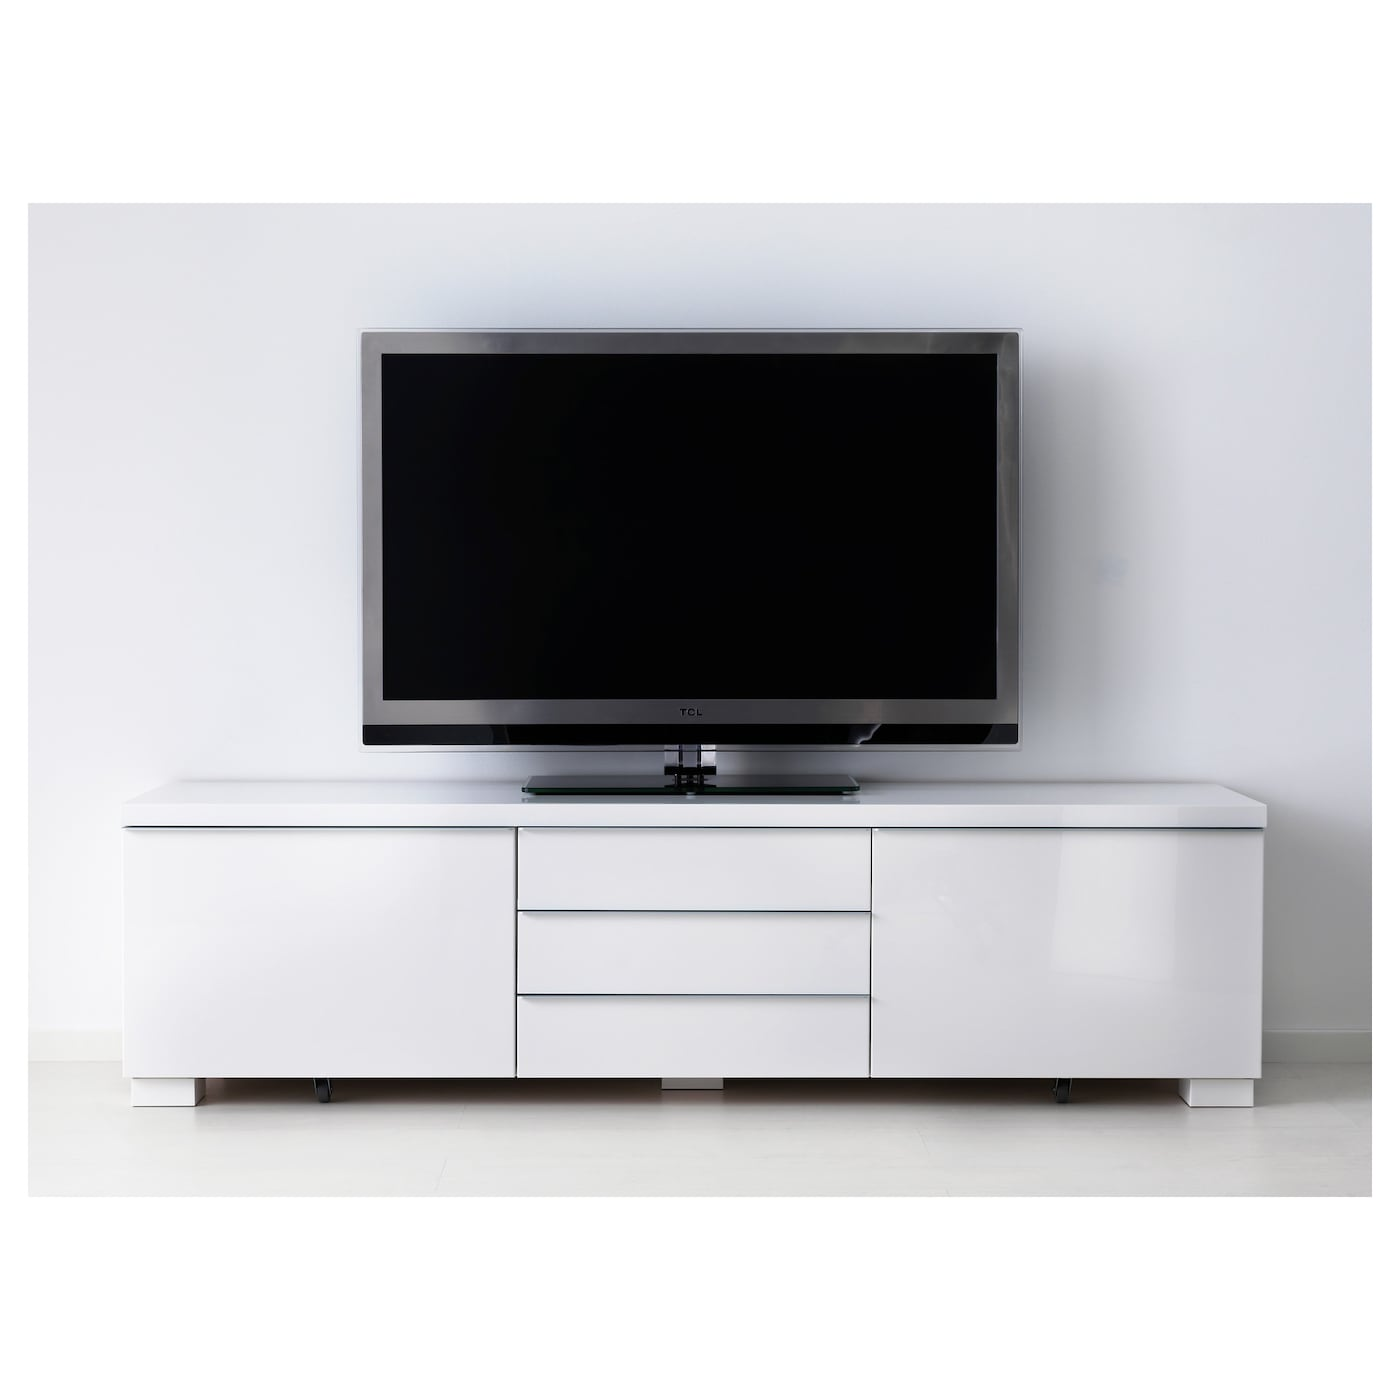 Meuble Tv Laque Rouge Besta Burs Ikea - Best Burs Banc Tv Brillant Blanc 180×41 Cm Ikea[mjhdah]http://affordableseoservicesnow.com/wp-content/uploads/2018/01/banc-tv-utah-meuble-led-blanc-gris-laque-200-cm-ikea-besta-burs-rouge-bois-exotique.jpg